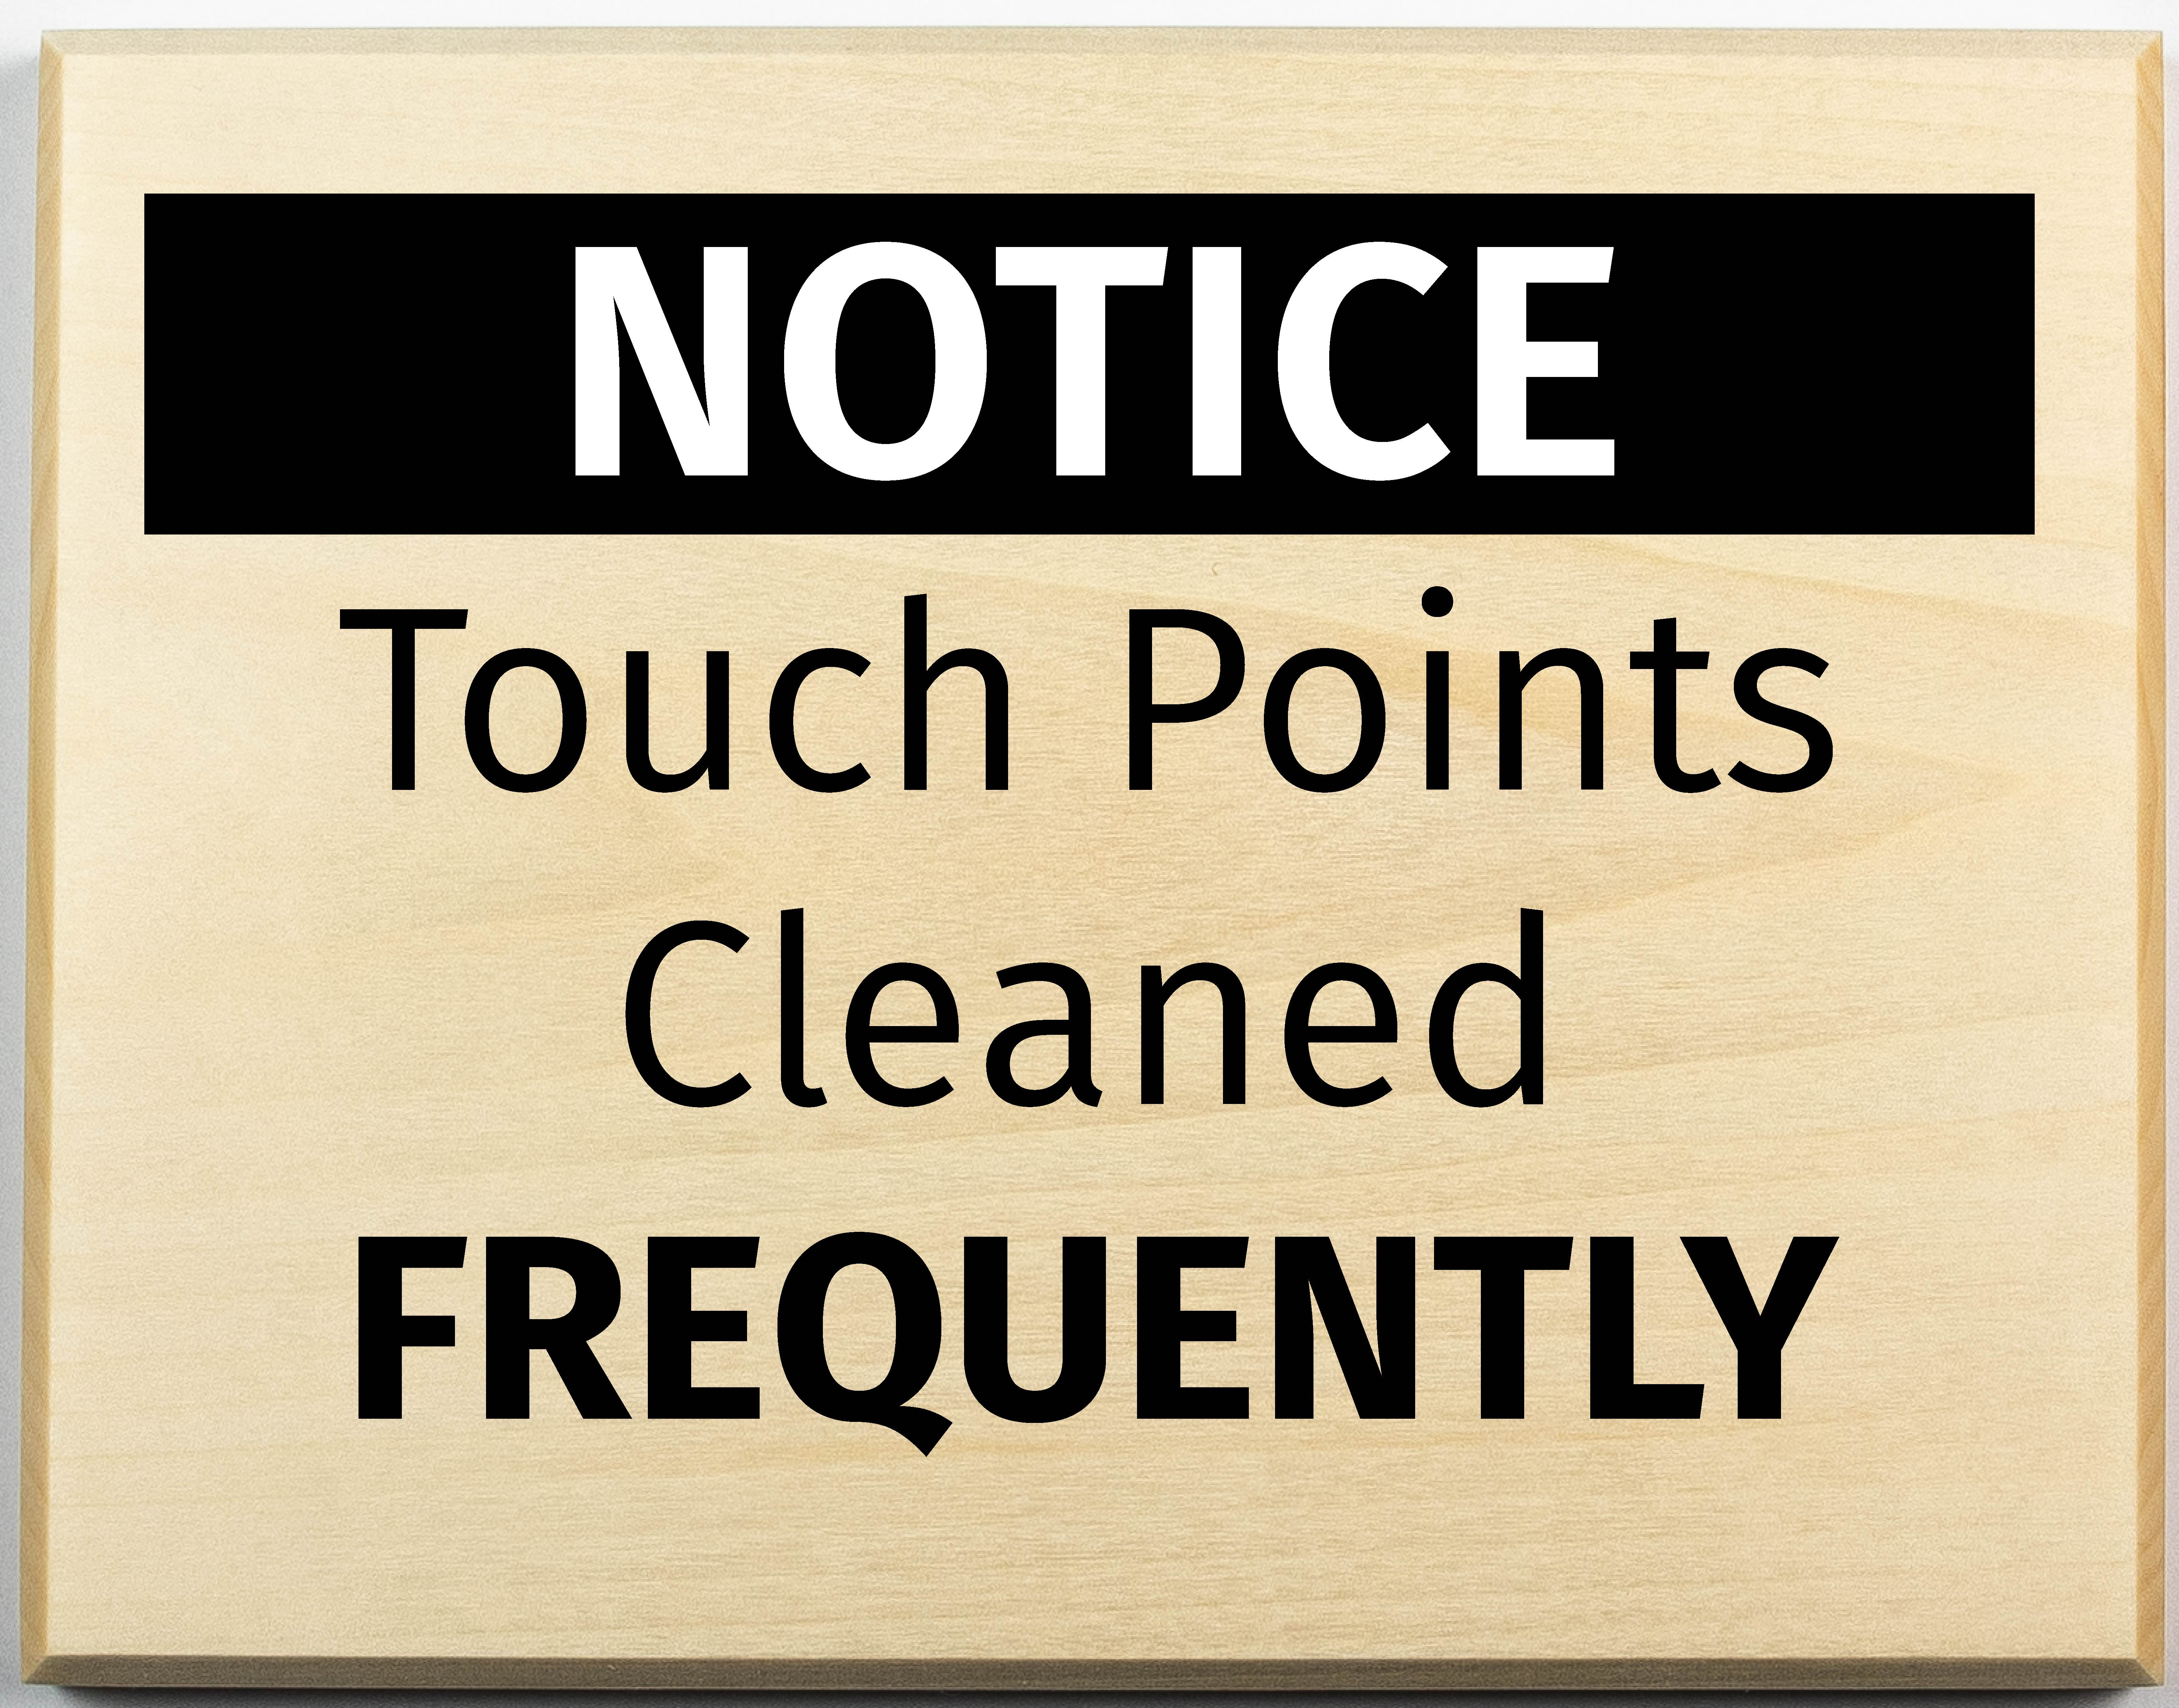 Cleaned Frequently Sign, Touch points